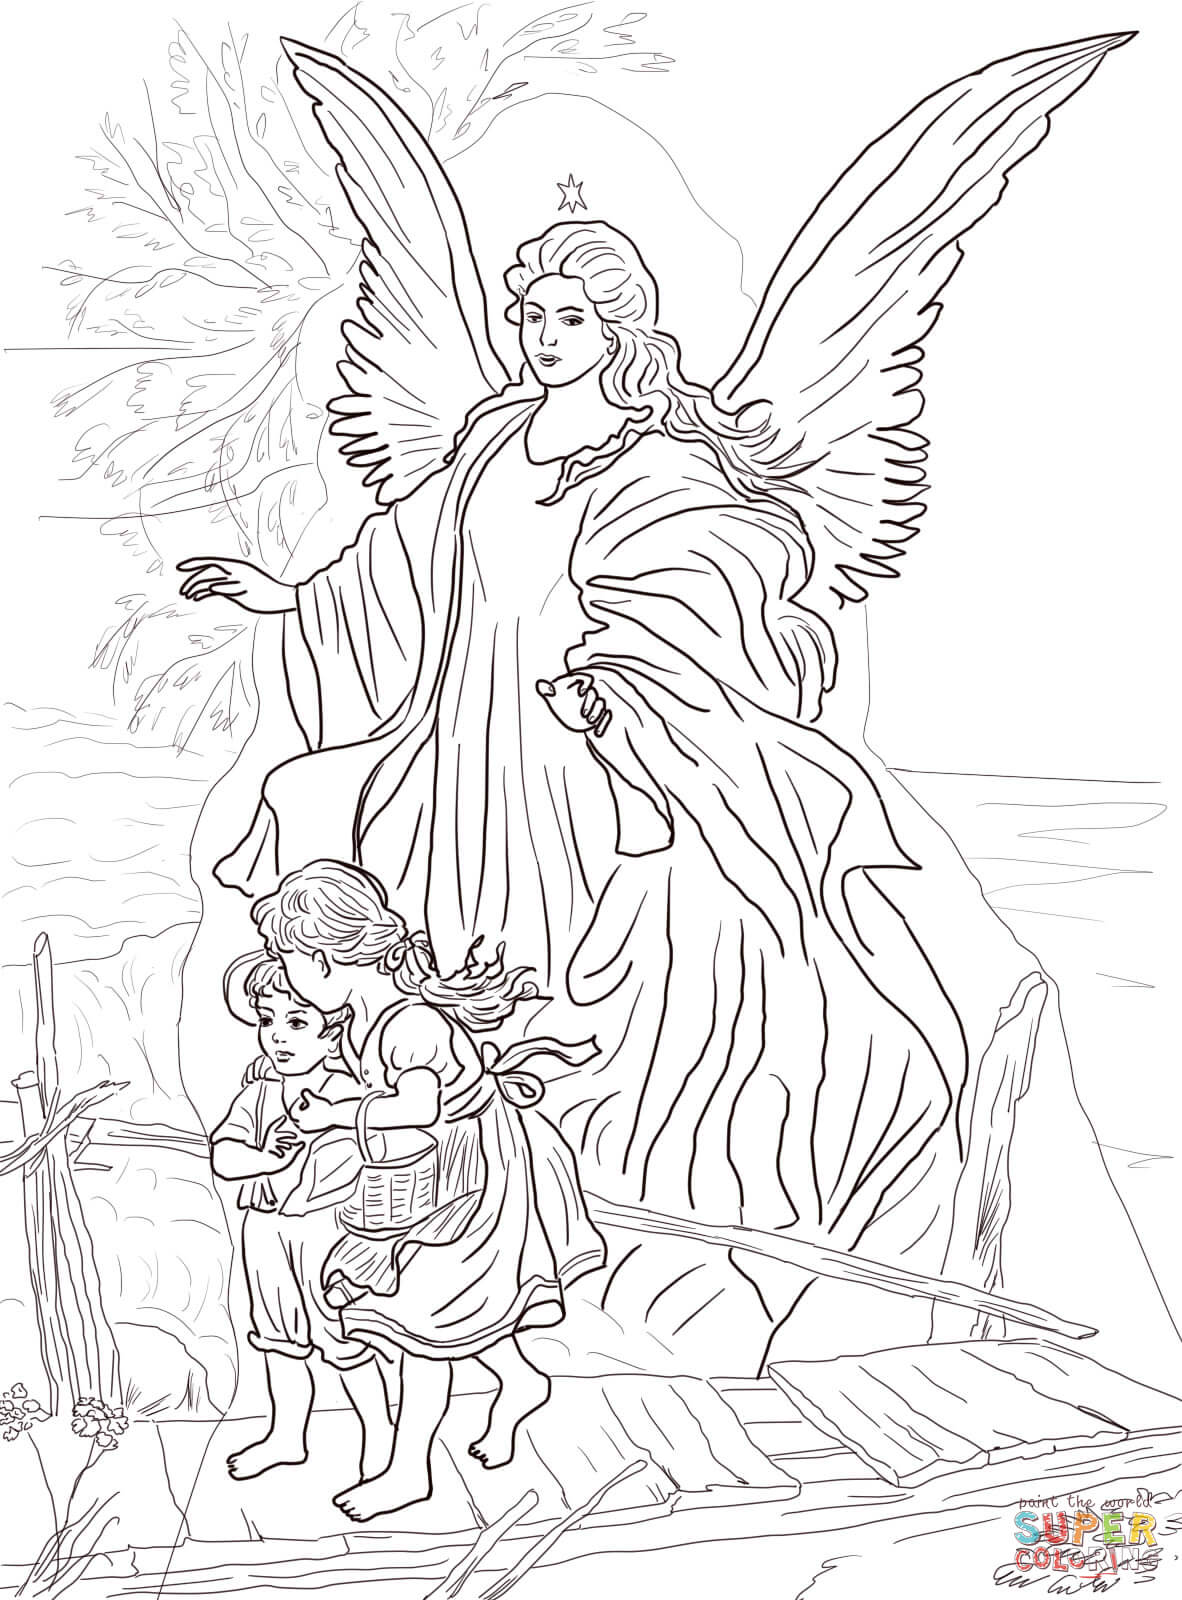 Coloring Pages Free Angel Coloring Pages angel coloring pages for adults az children are protected by guardian page free